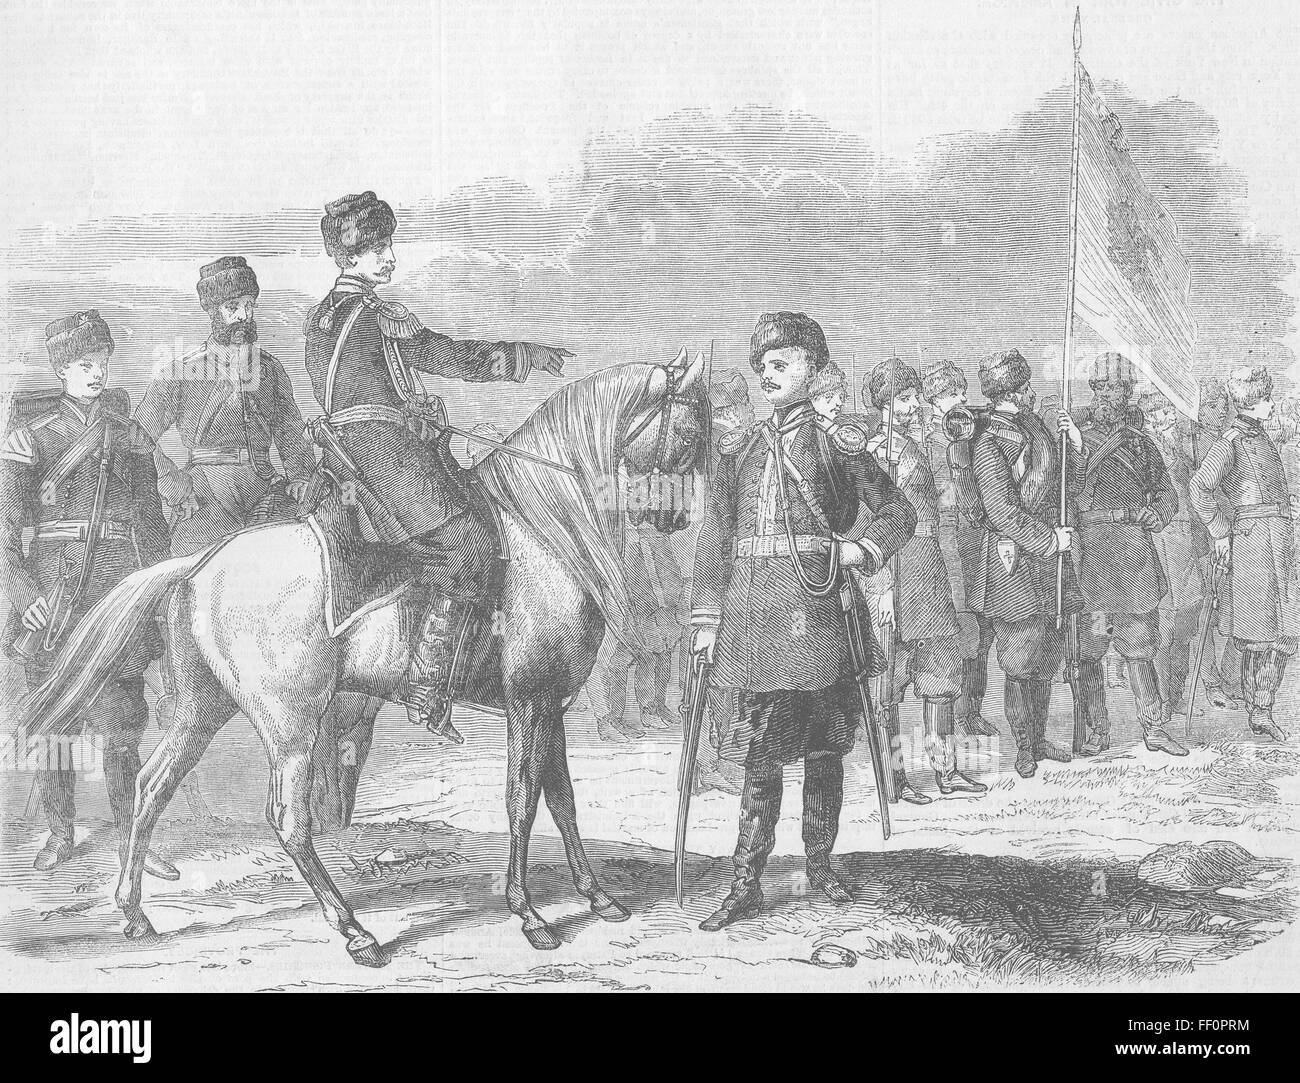 RUSSIA Imperial Chasseurs of Russian Army 1862. Illustrated London News - Stock Image